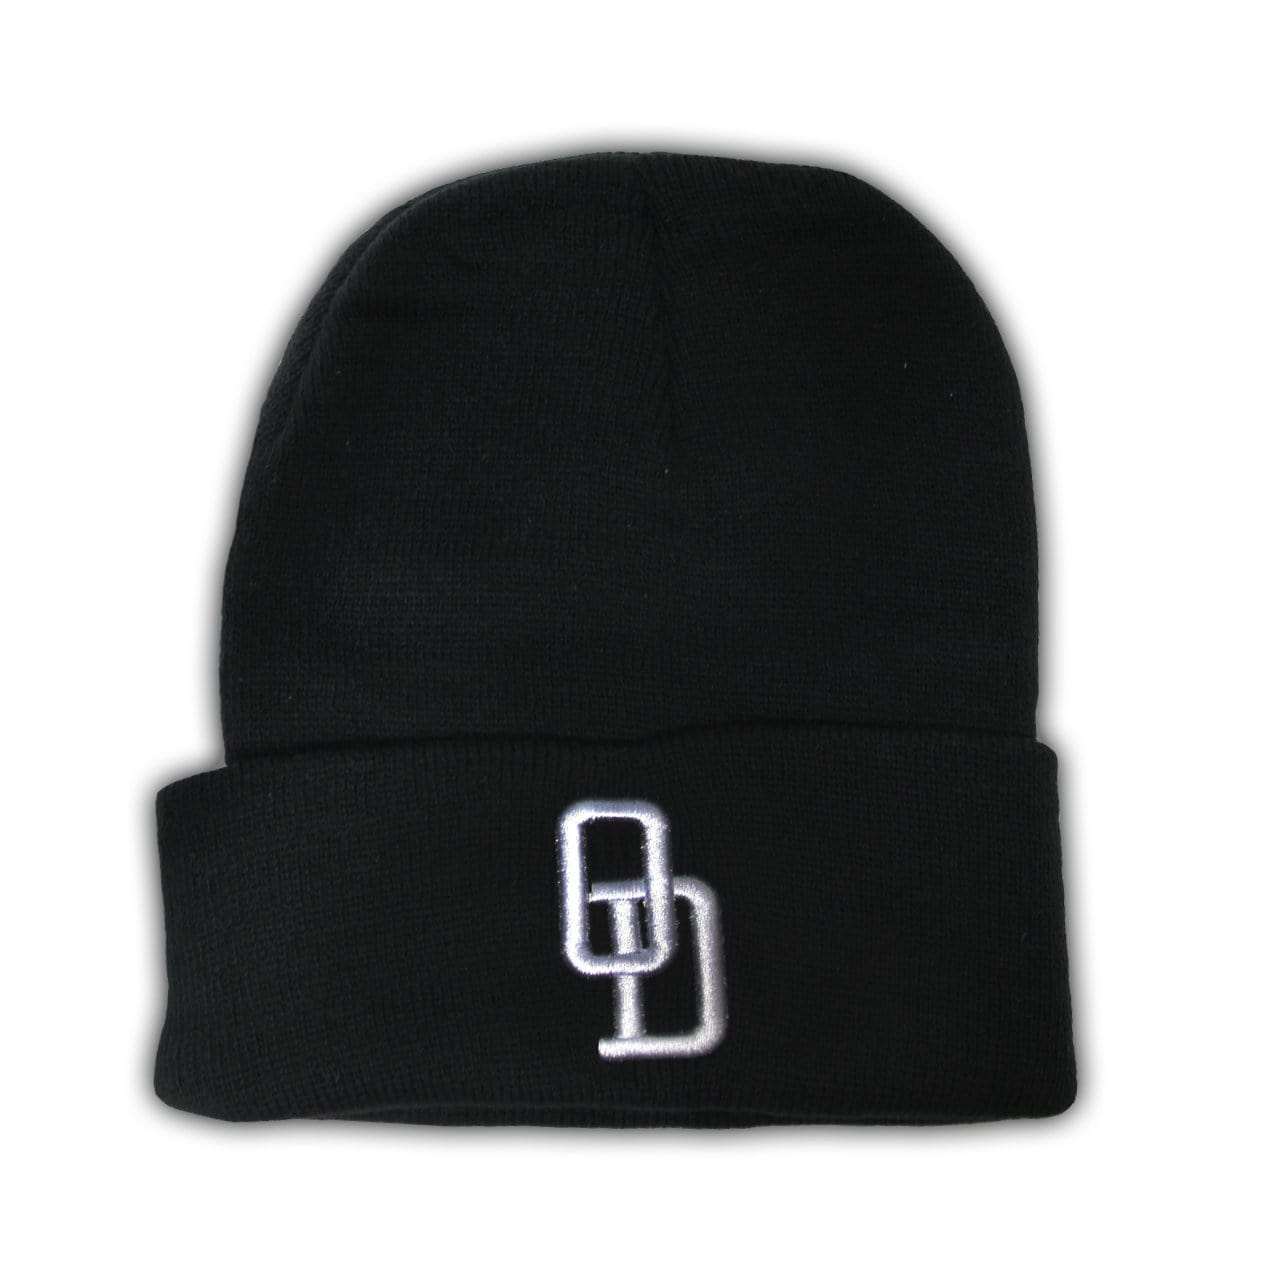 Black knit beanie with O and D embroidered letters